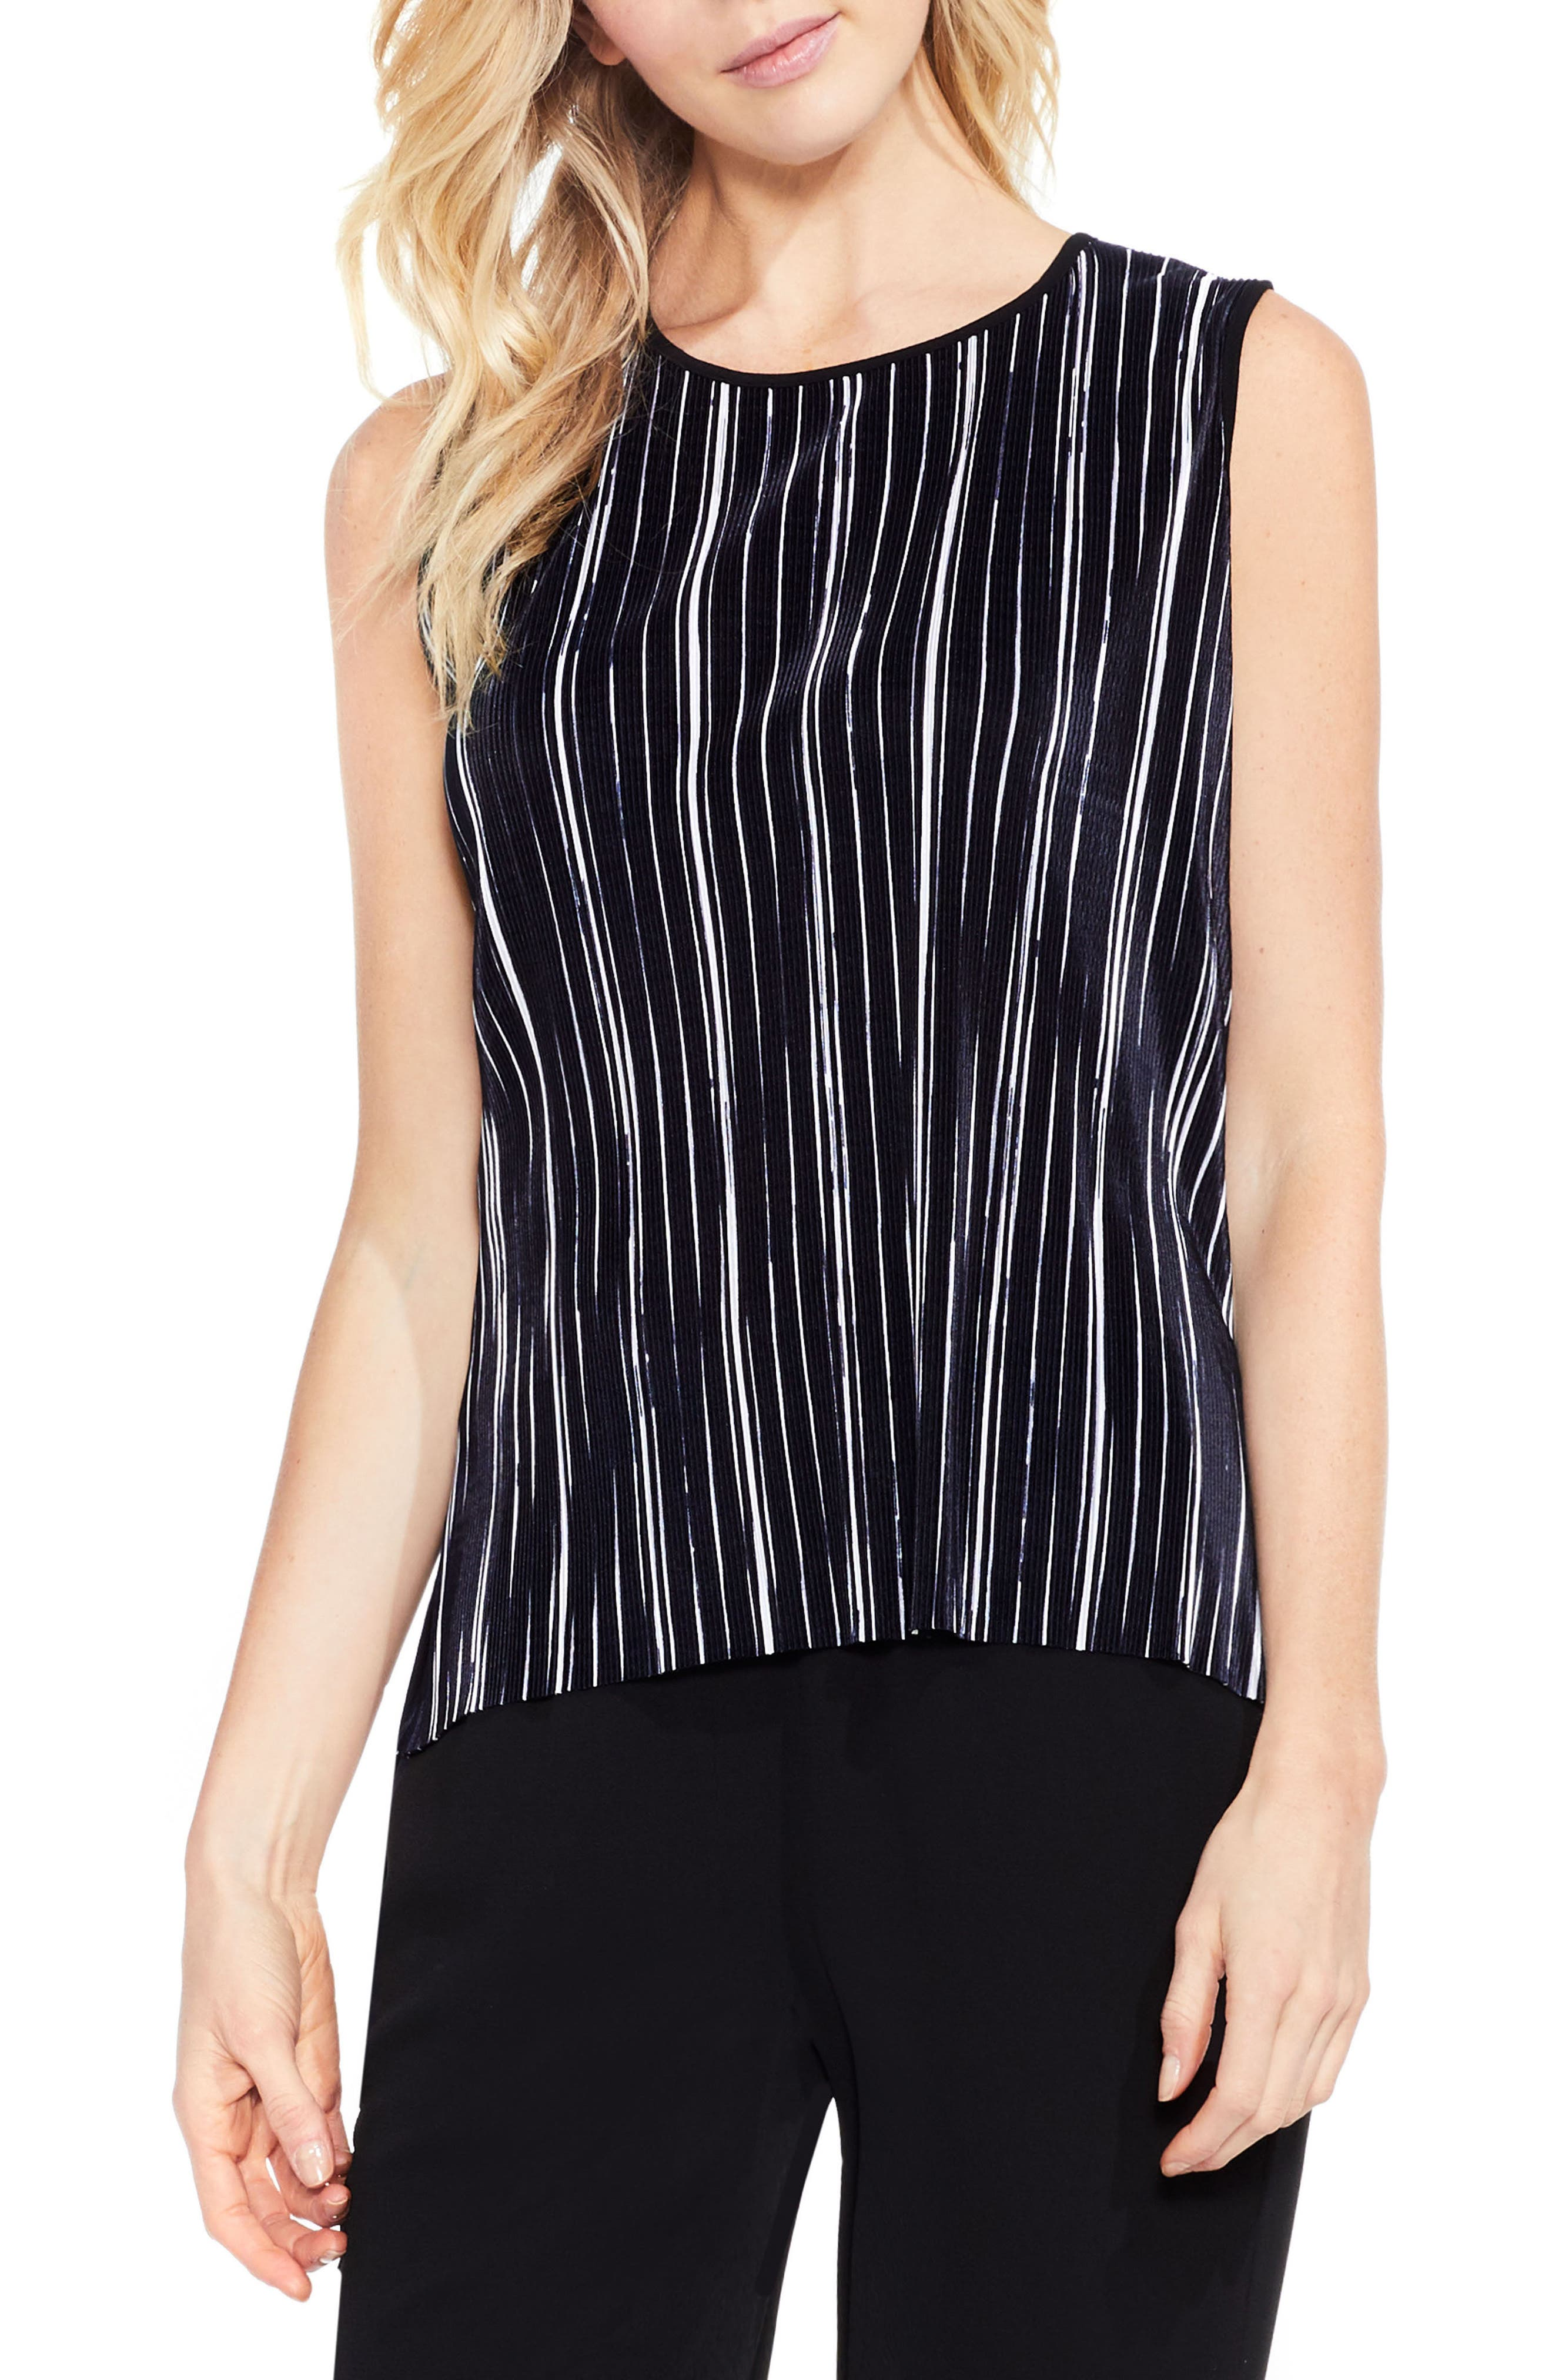 Vince Camuto Bodre Sleeveless Top